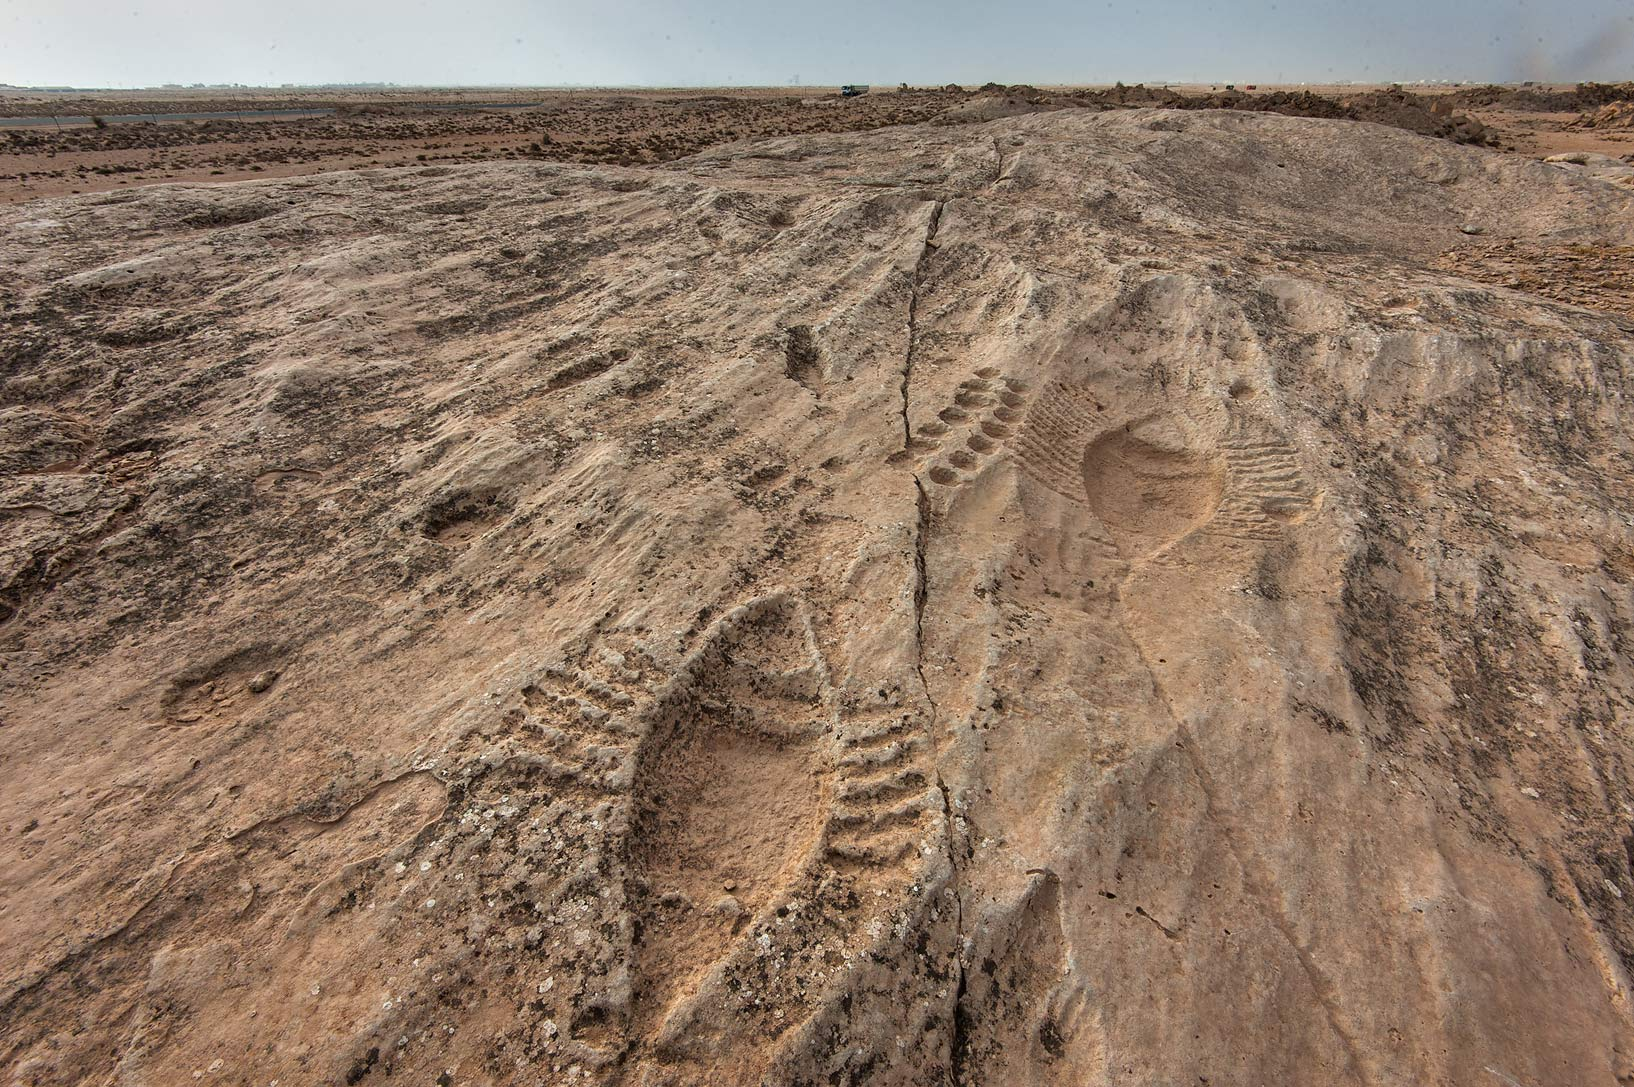 Stone engravings (petroglyphs) on a rocky ridge...site, on north-eastern coast. Qatar